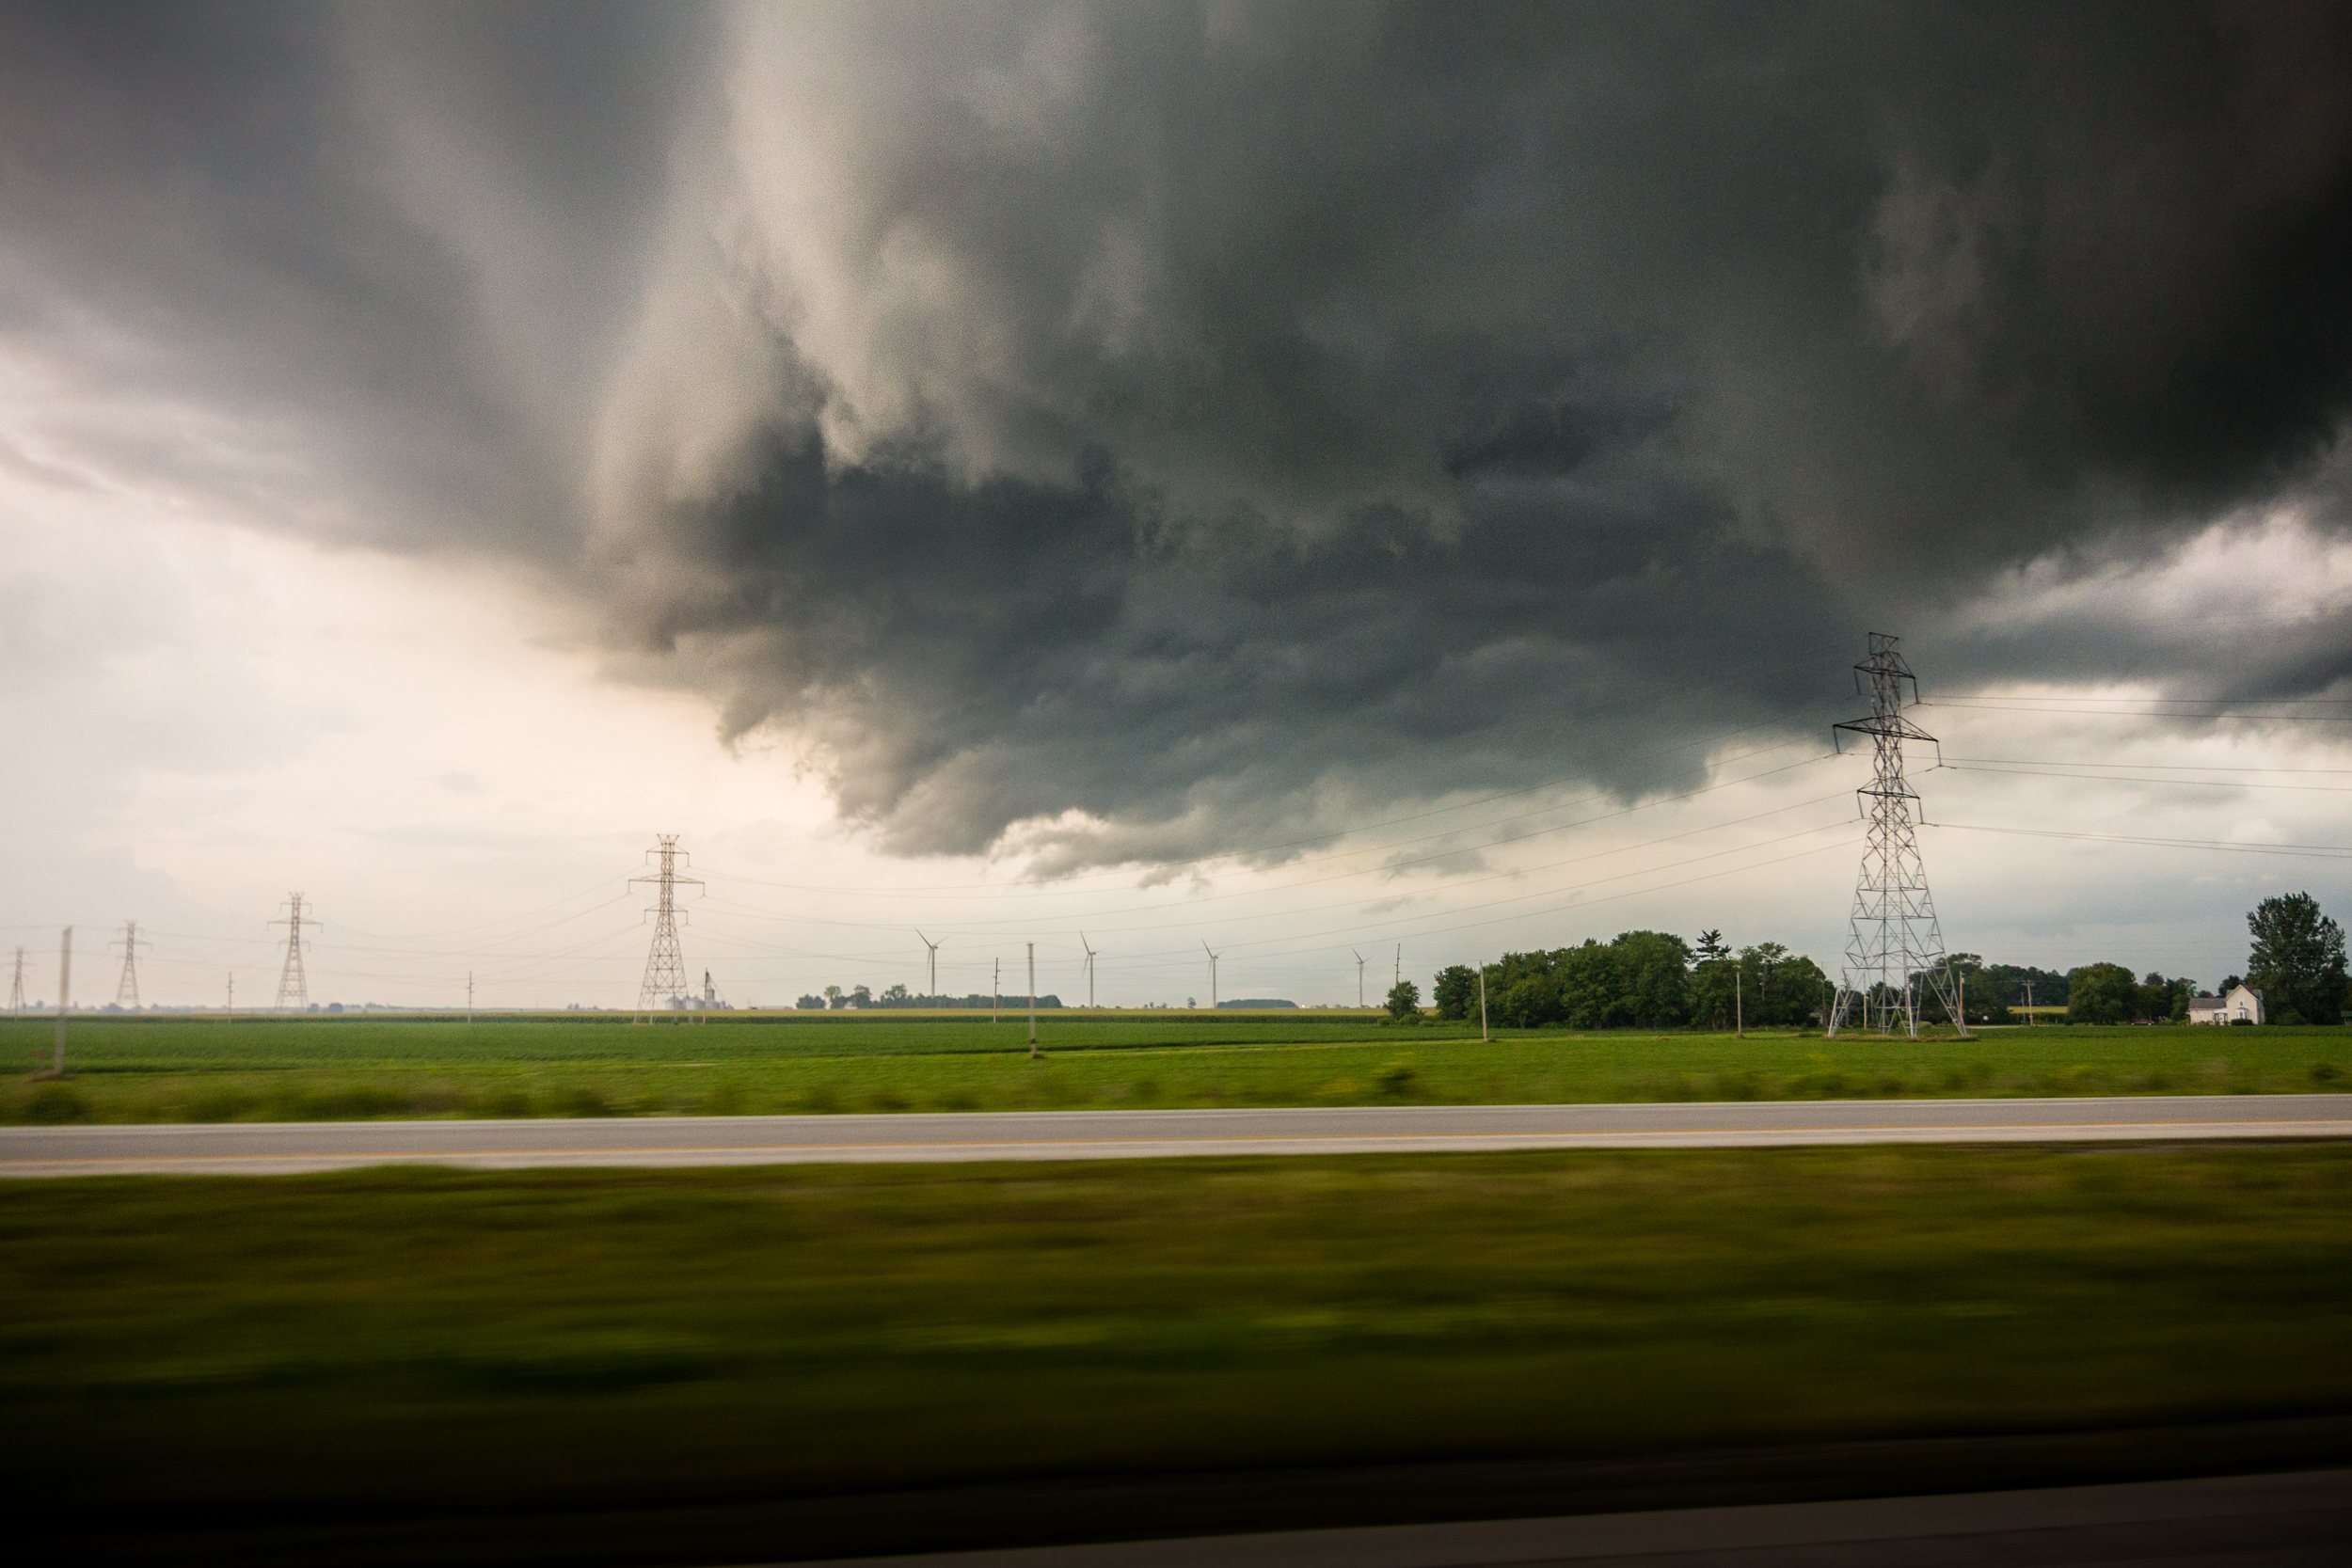 Storms over large wind farms near Remington, Indiana.